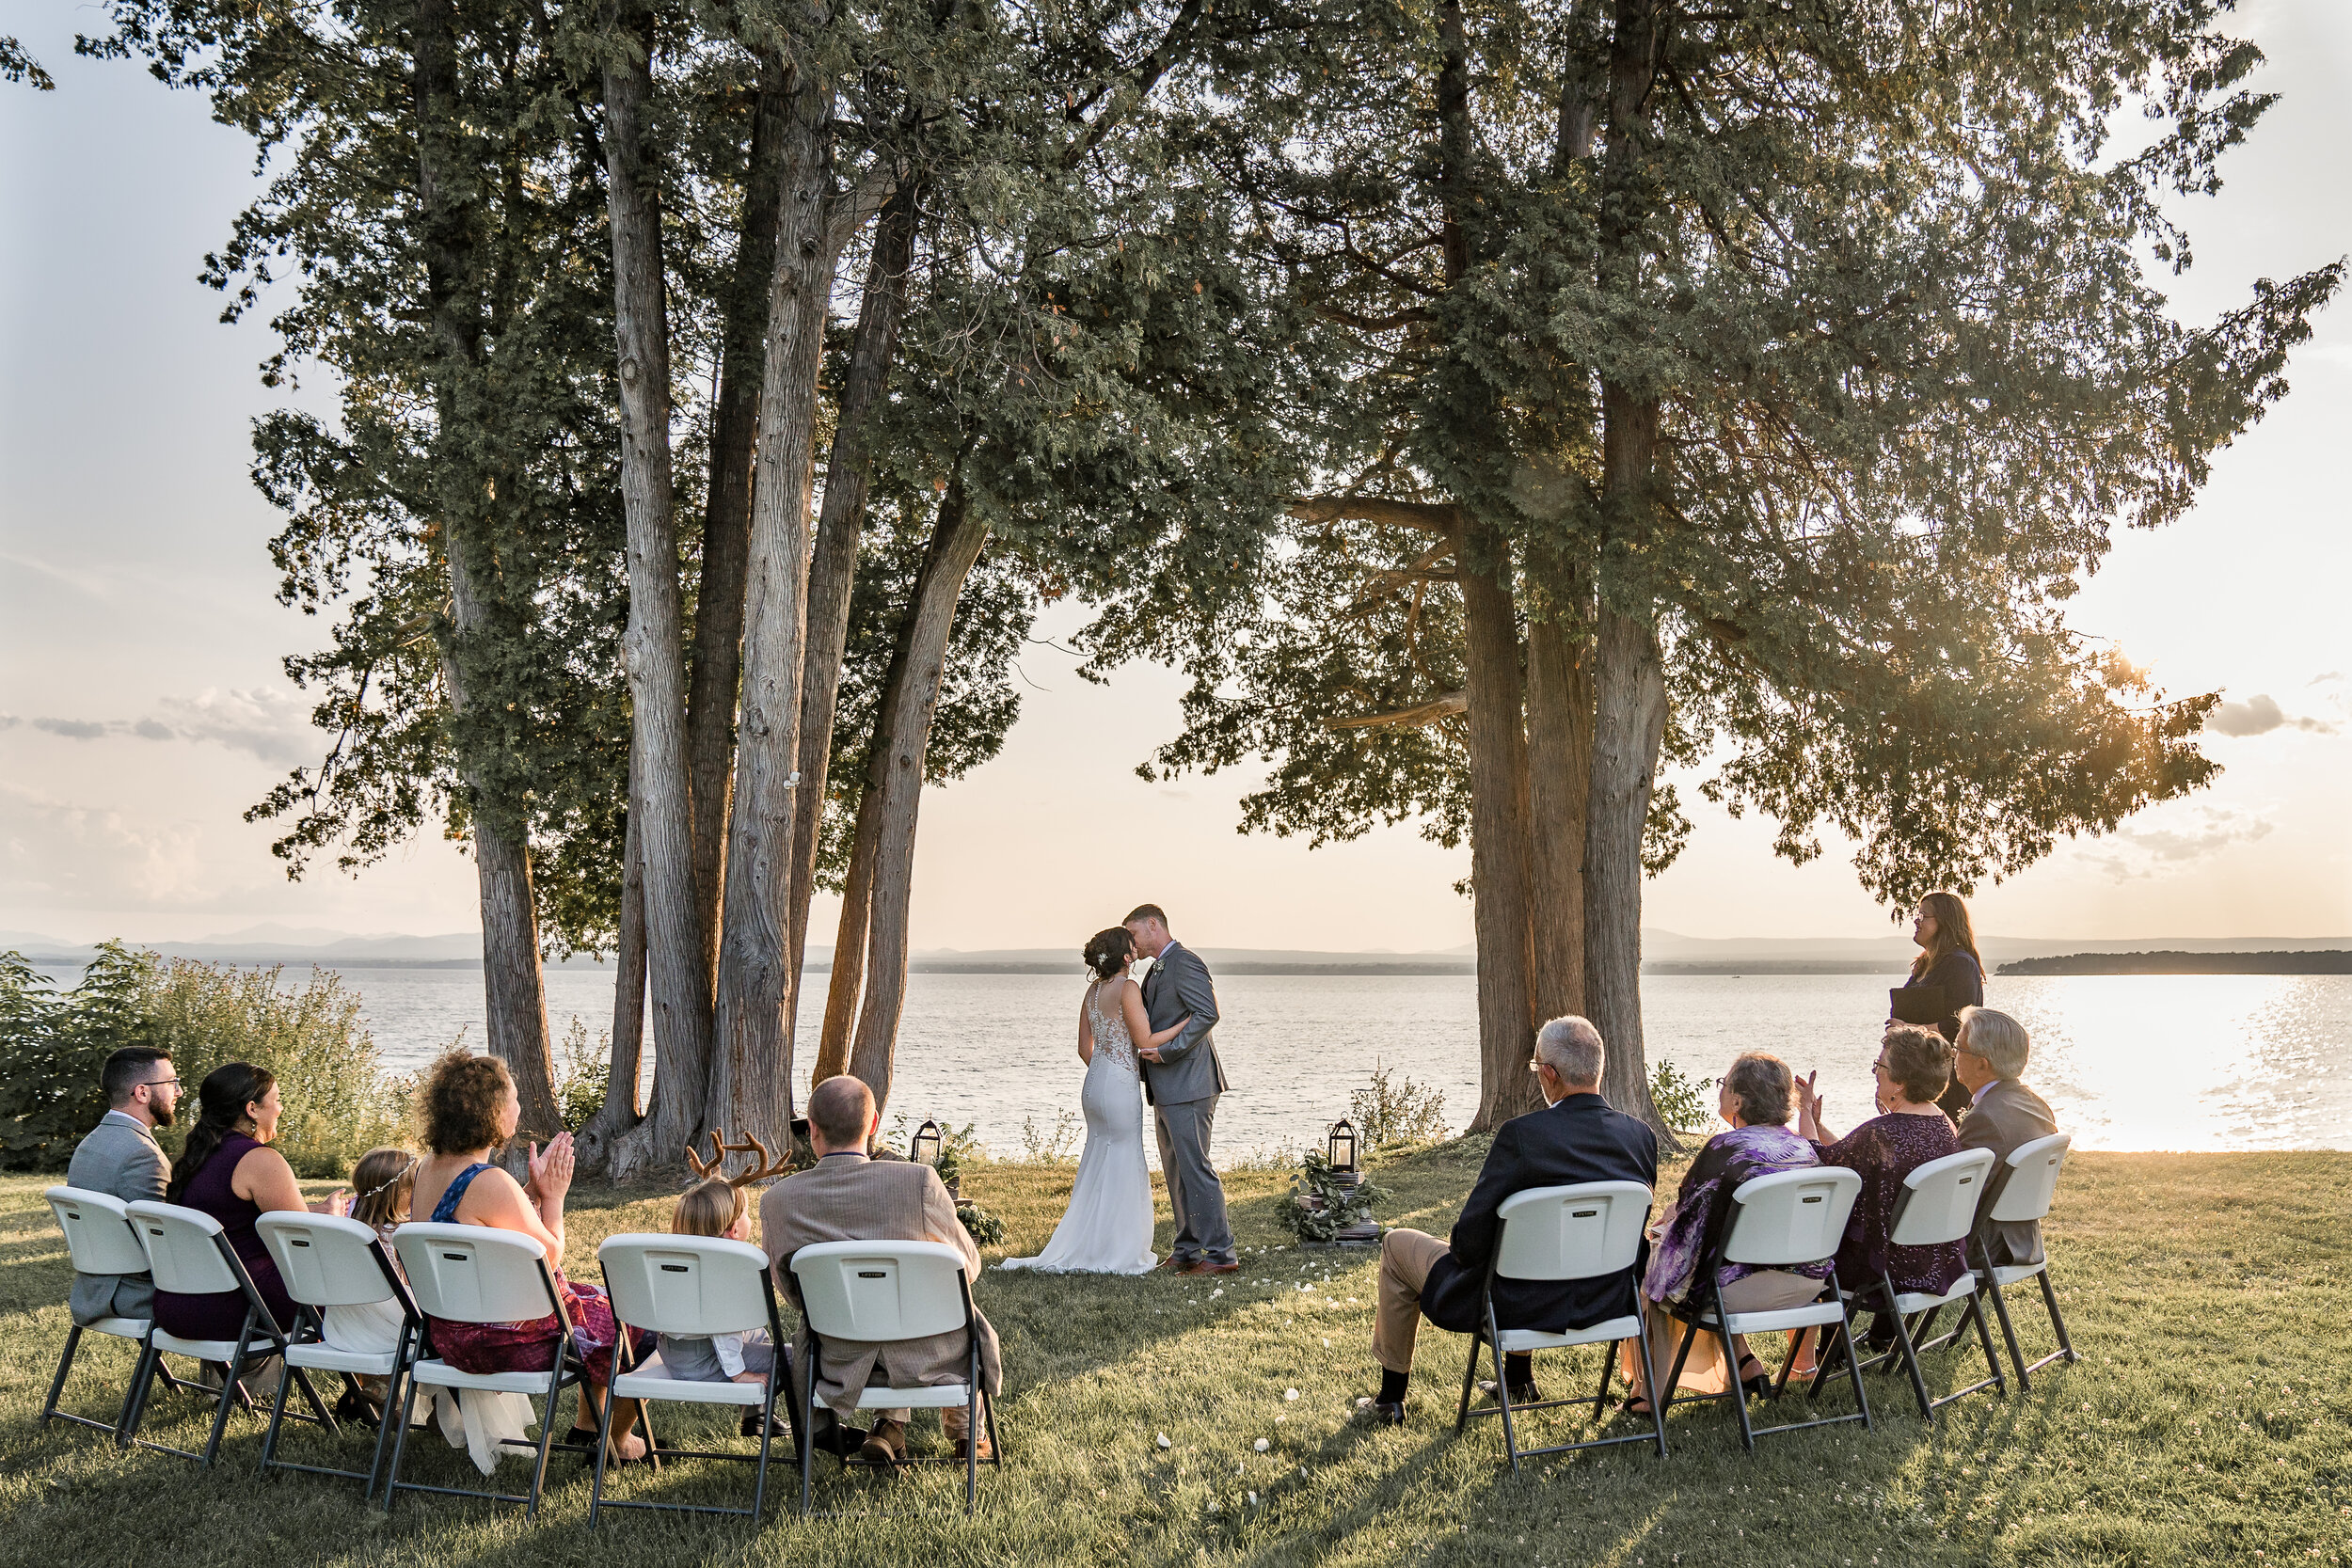 Summer Lakeside Elopement Photography Vermont